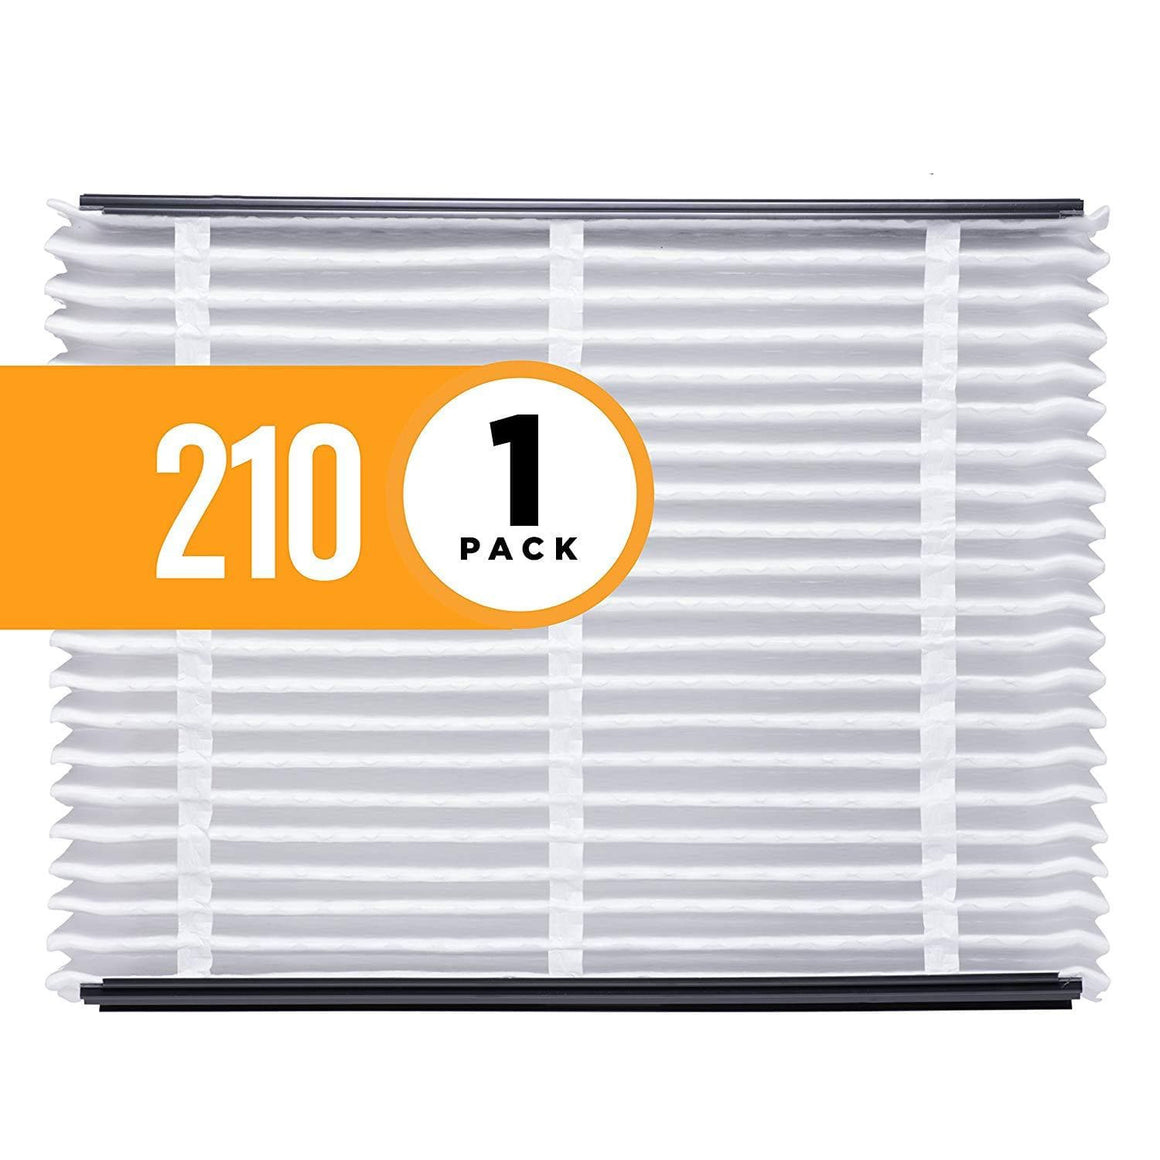 Aprilaire 210 Air Filter for Aprilaire 2210 Whole Home Air Purifiers, MERV 11